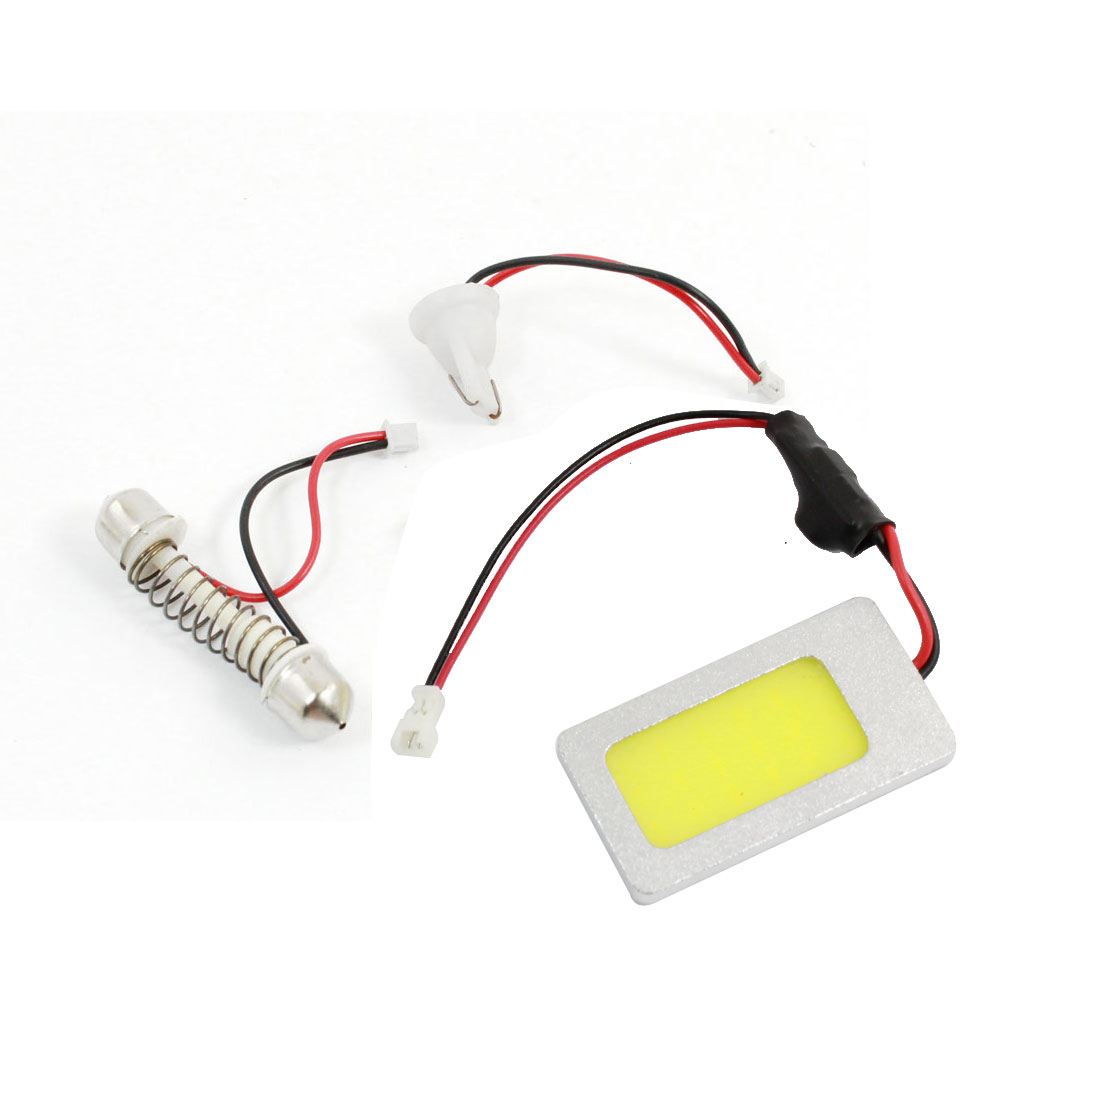 Auto White 18 COB Map Reading Dome Lamp Panel + T10 Festoon Adapter internal